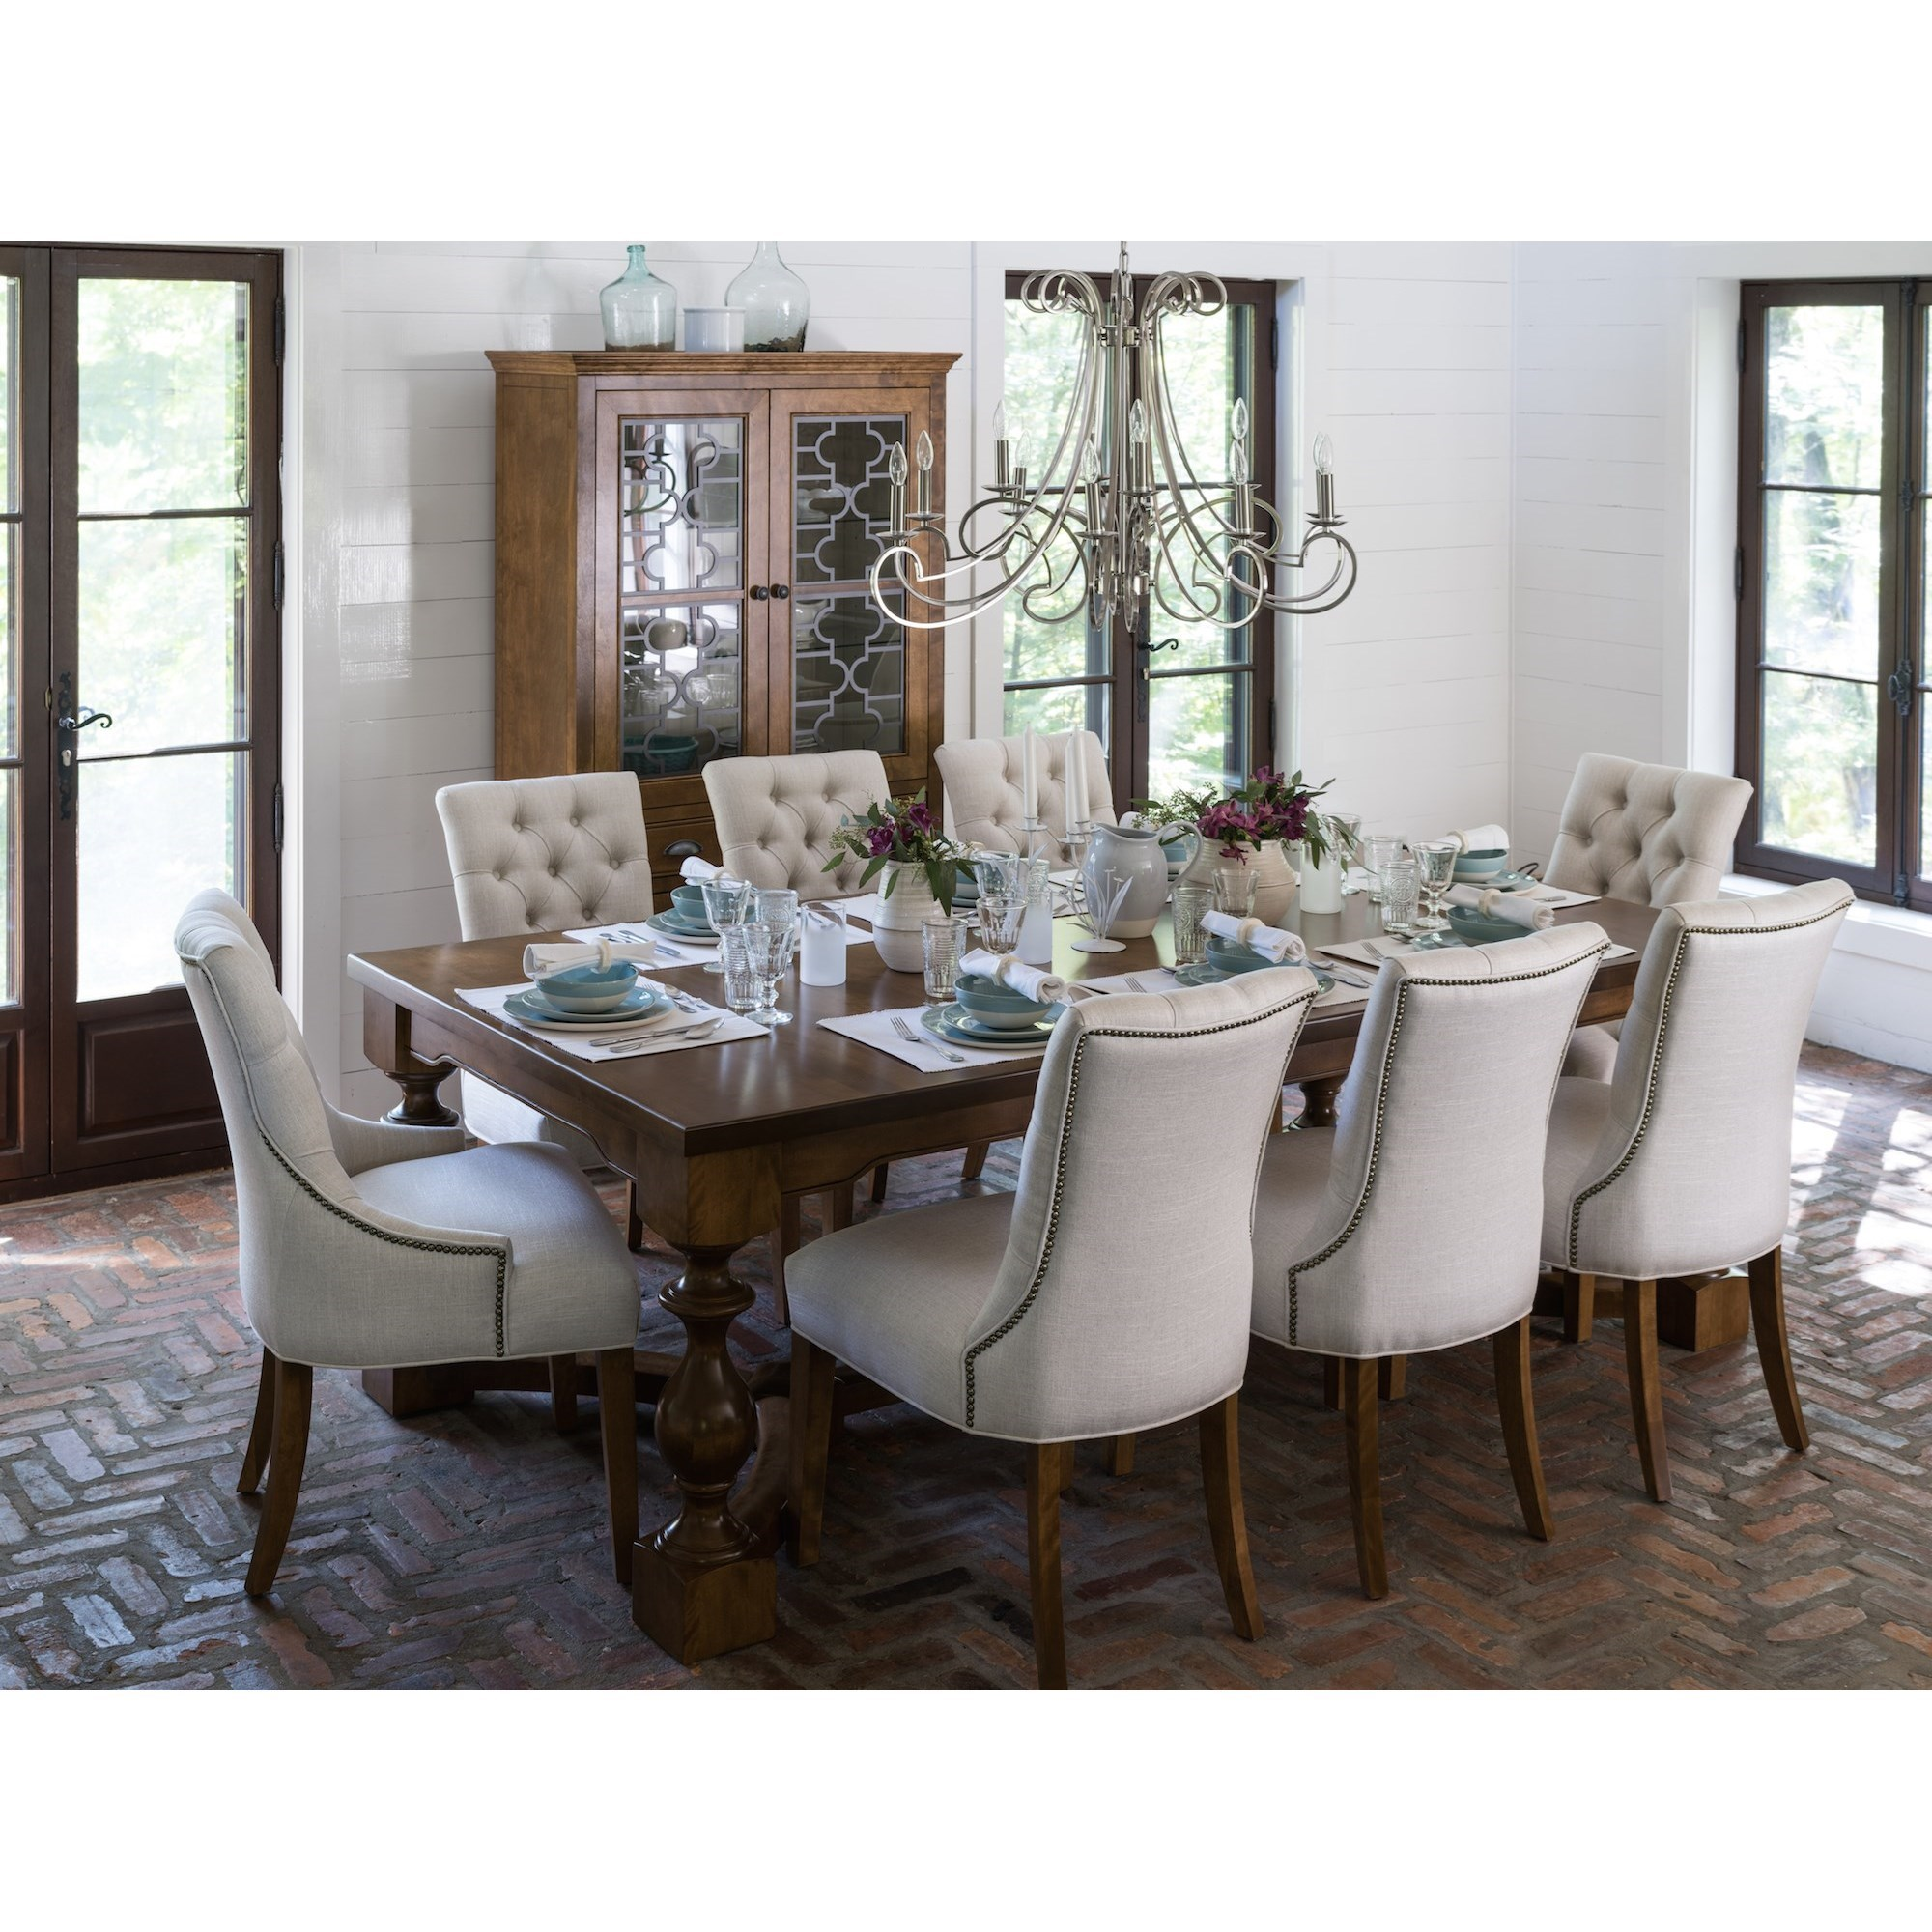 Canadel Farmhouse Chic Dining Room Group